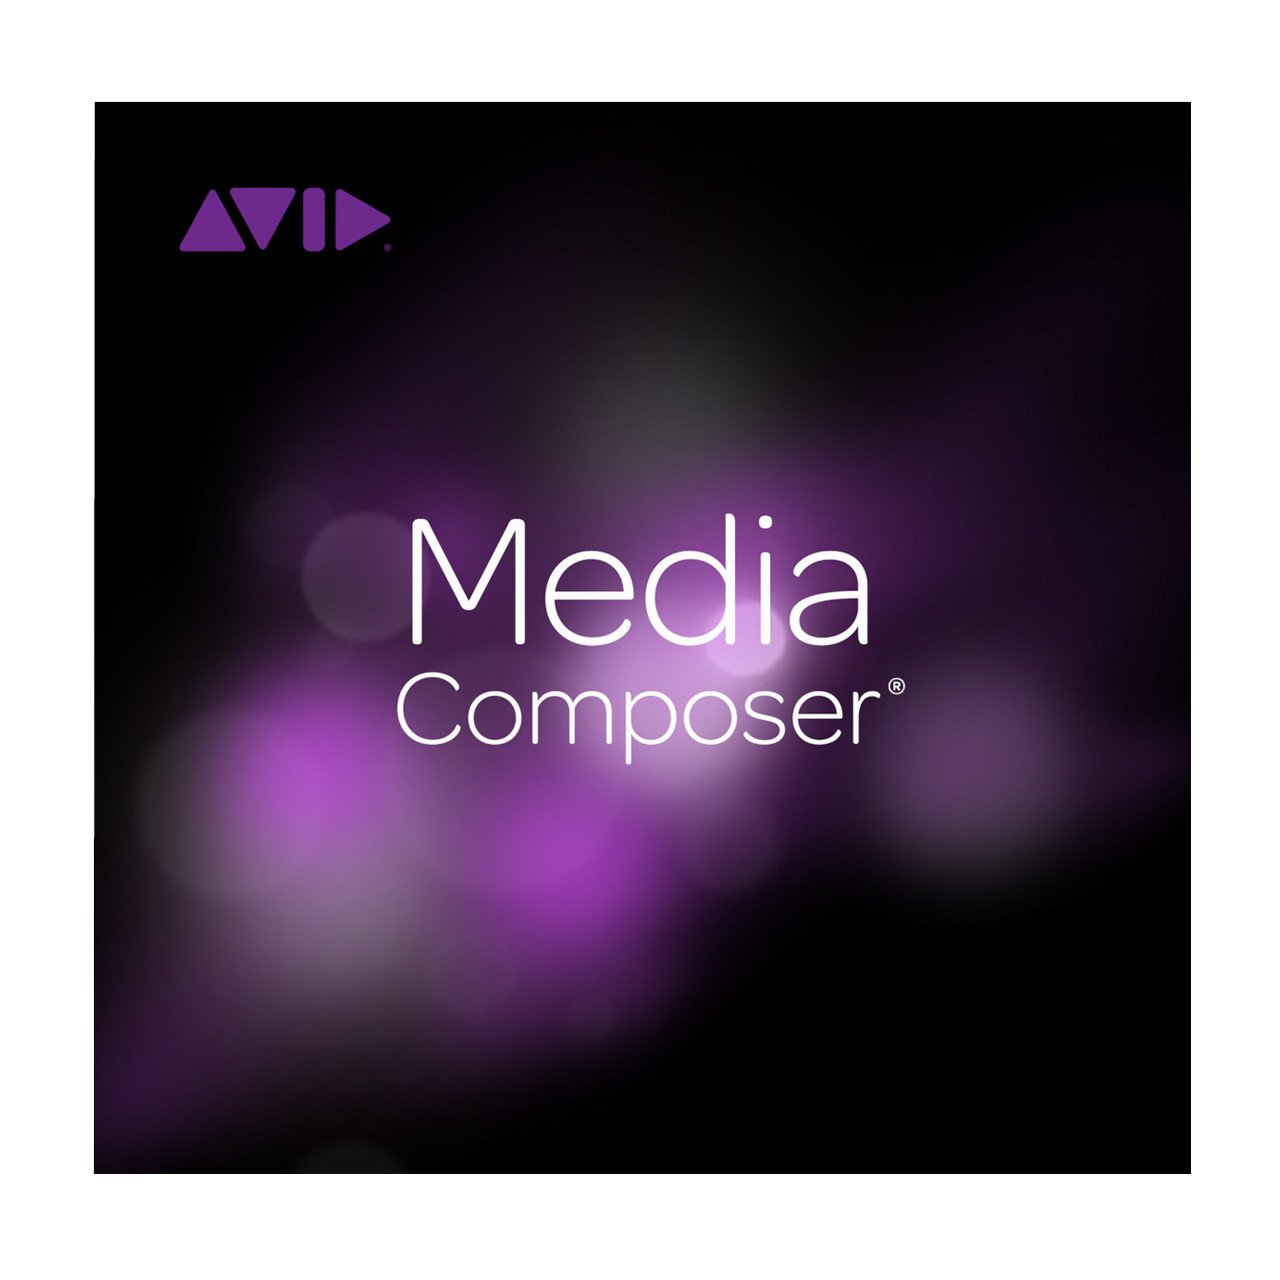 AVID Software - AVID Media Composer Video Editing Software Annual Subscription